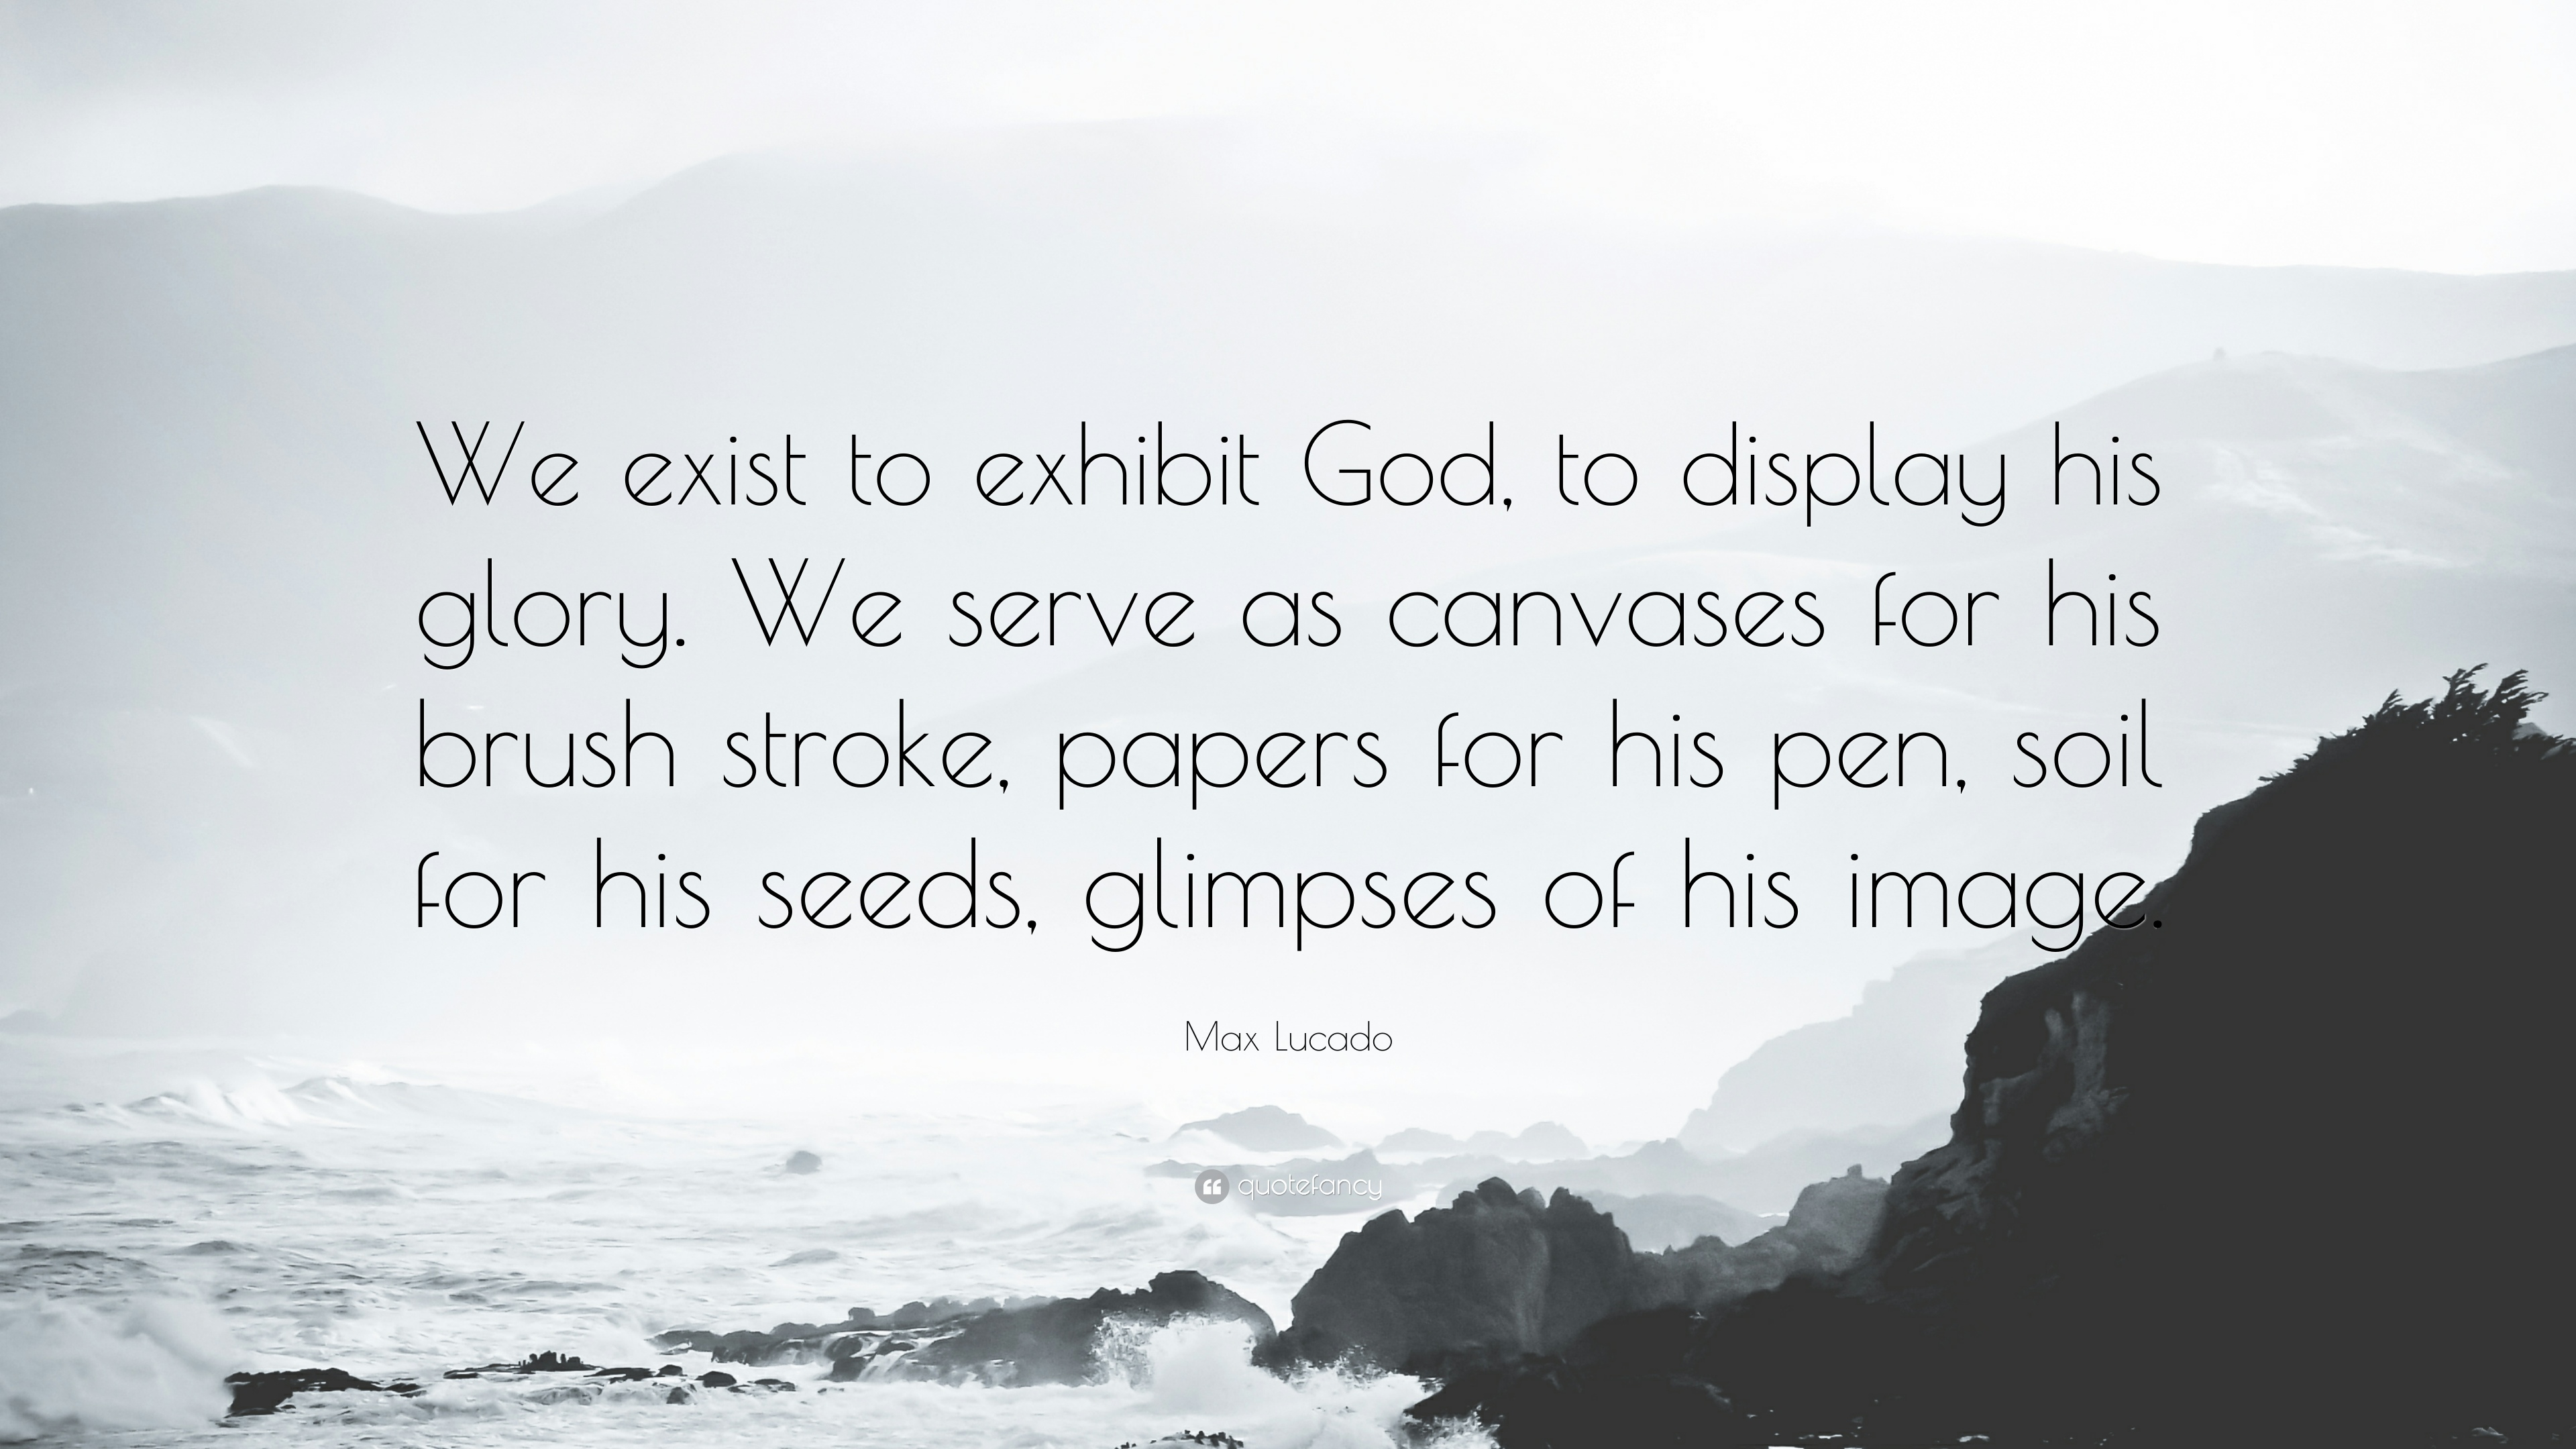 169632-Max-Lucado-Quote-We-exist-to-exhibit-God-to-display-his-glory-We